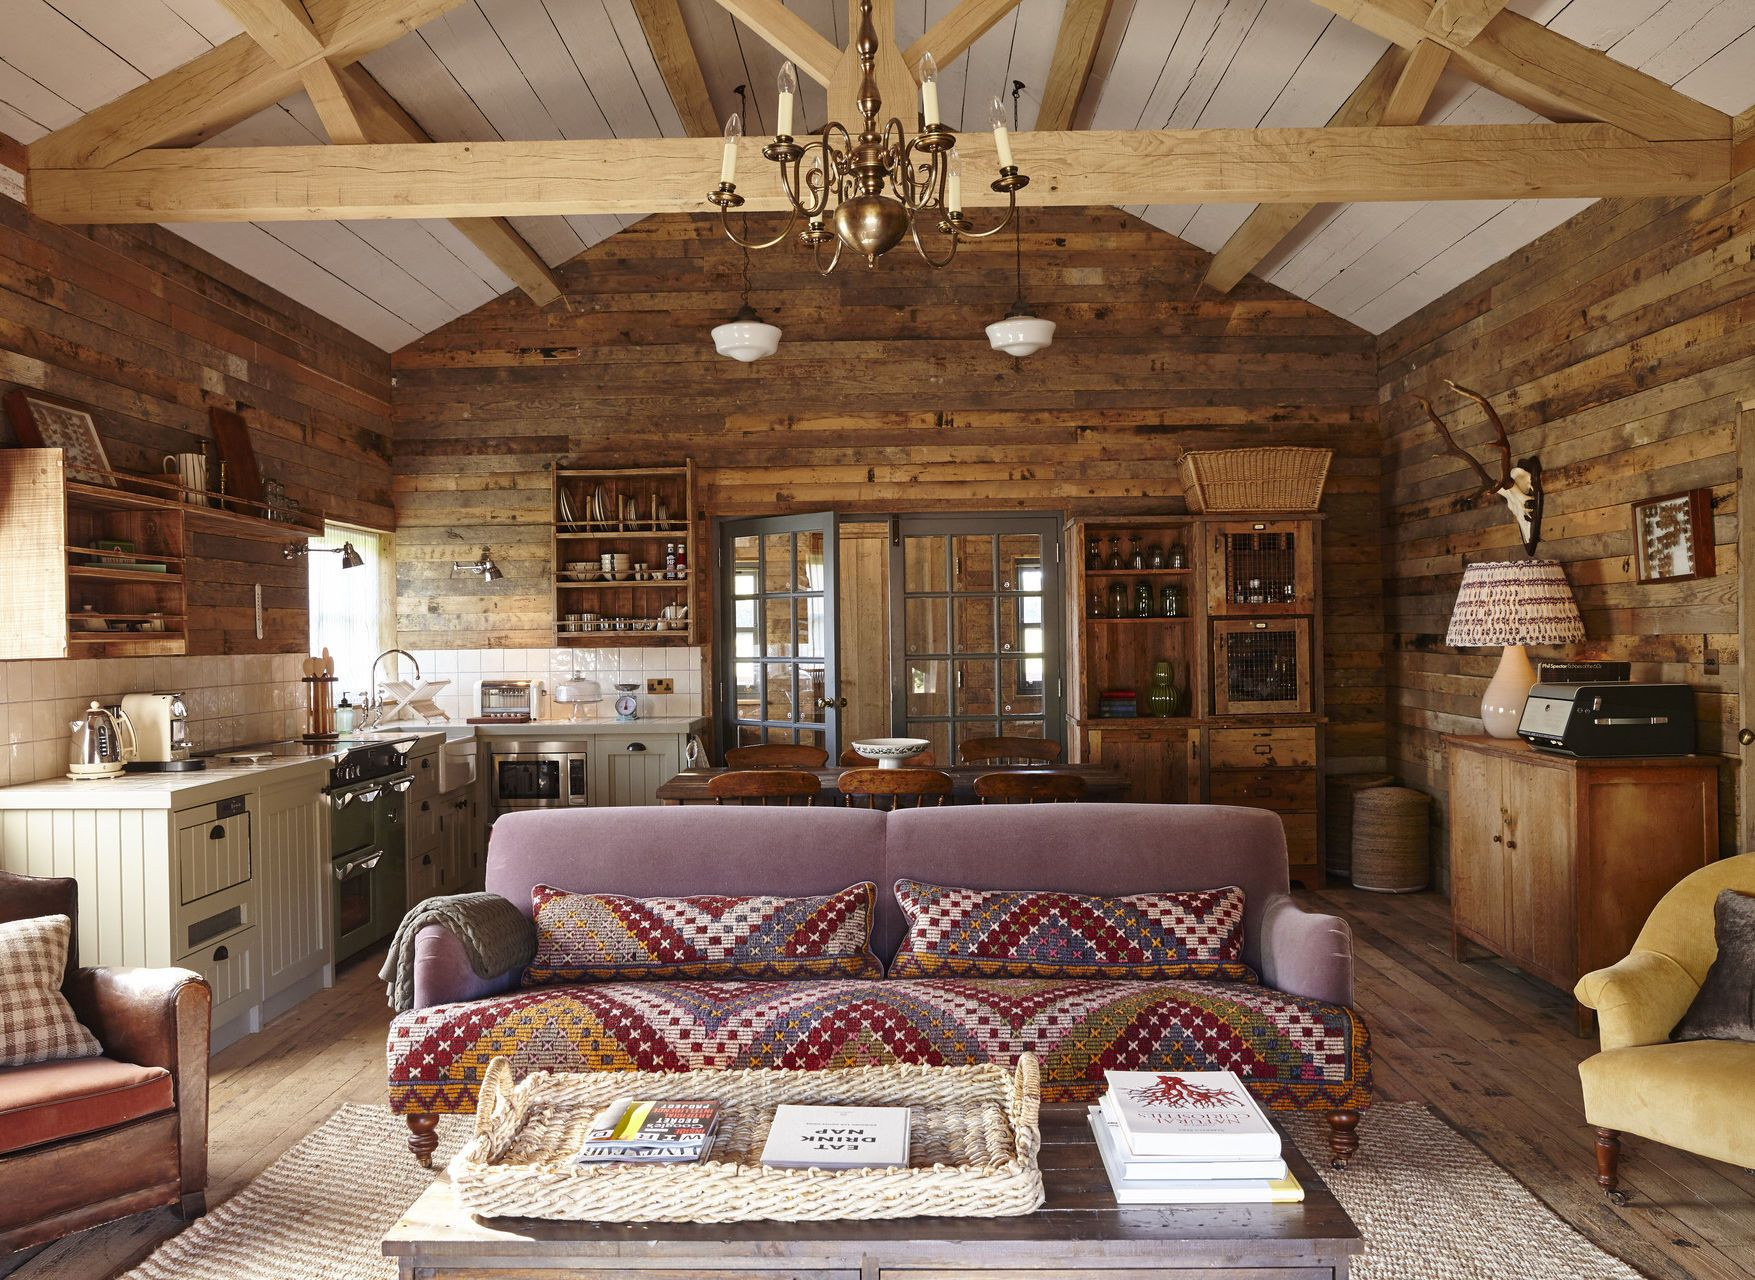 8 Charming Country House Hotels In Europe